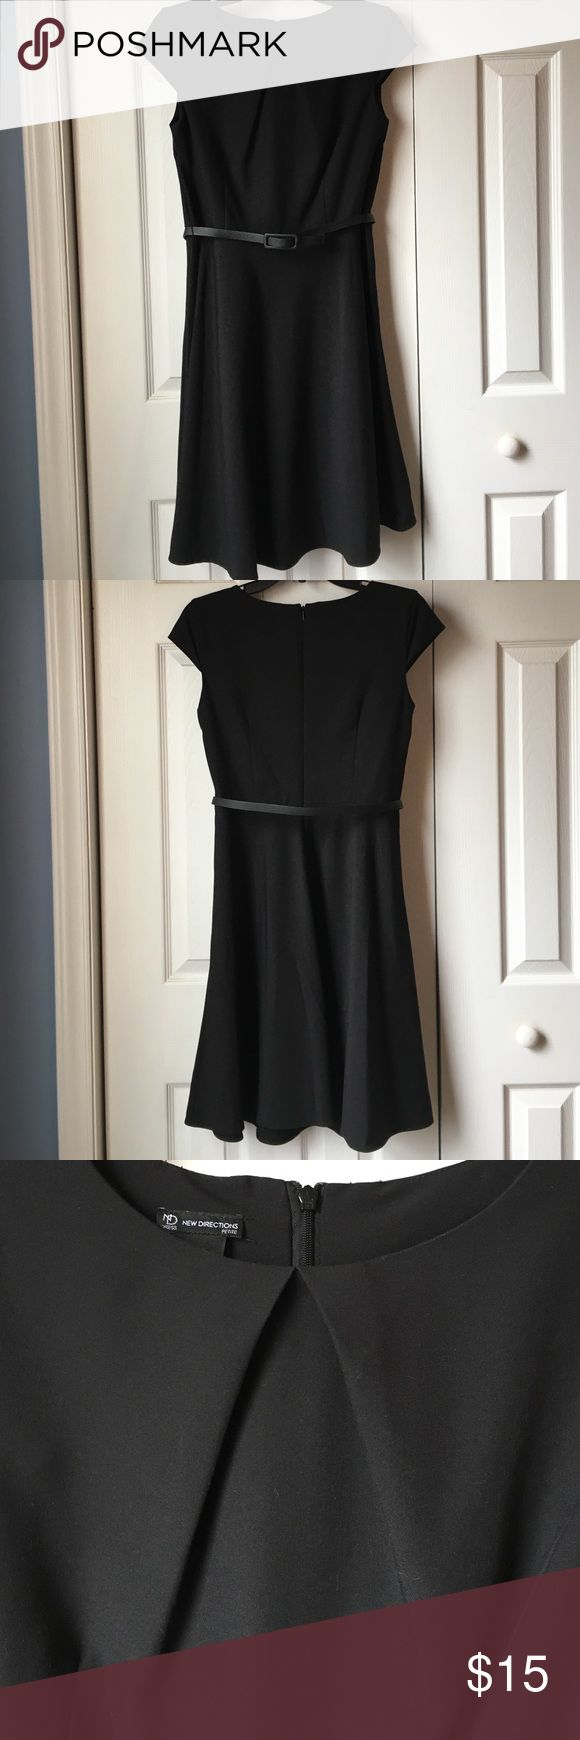 """New Directions Petite Dress Worn once! Black fit and Flare dress with cap sleeves. Includes narrow faux leather belt. Approximately 37 inches long. Perfect """"Little Black Dress""""! new directions Dresses"""